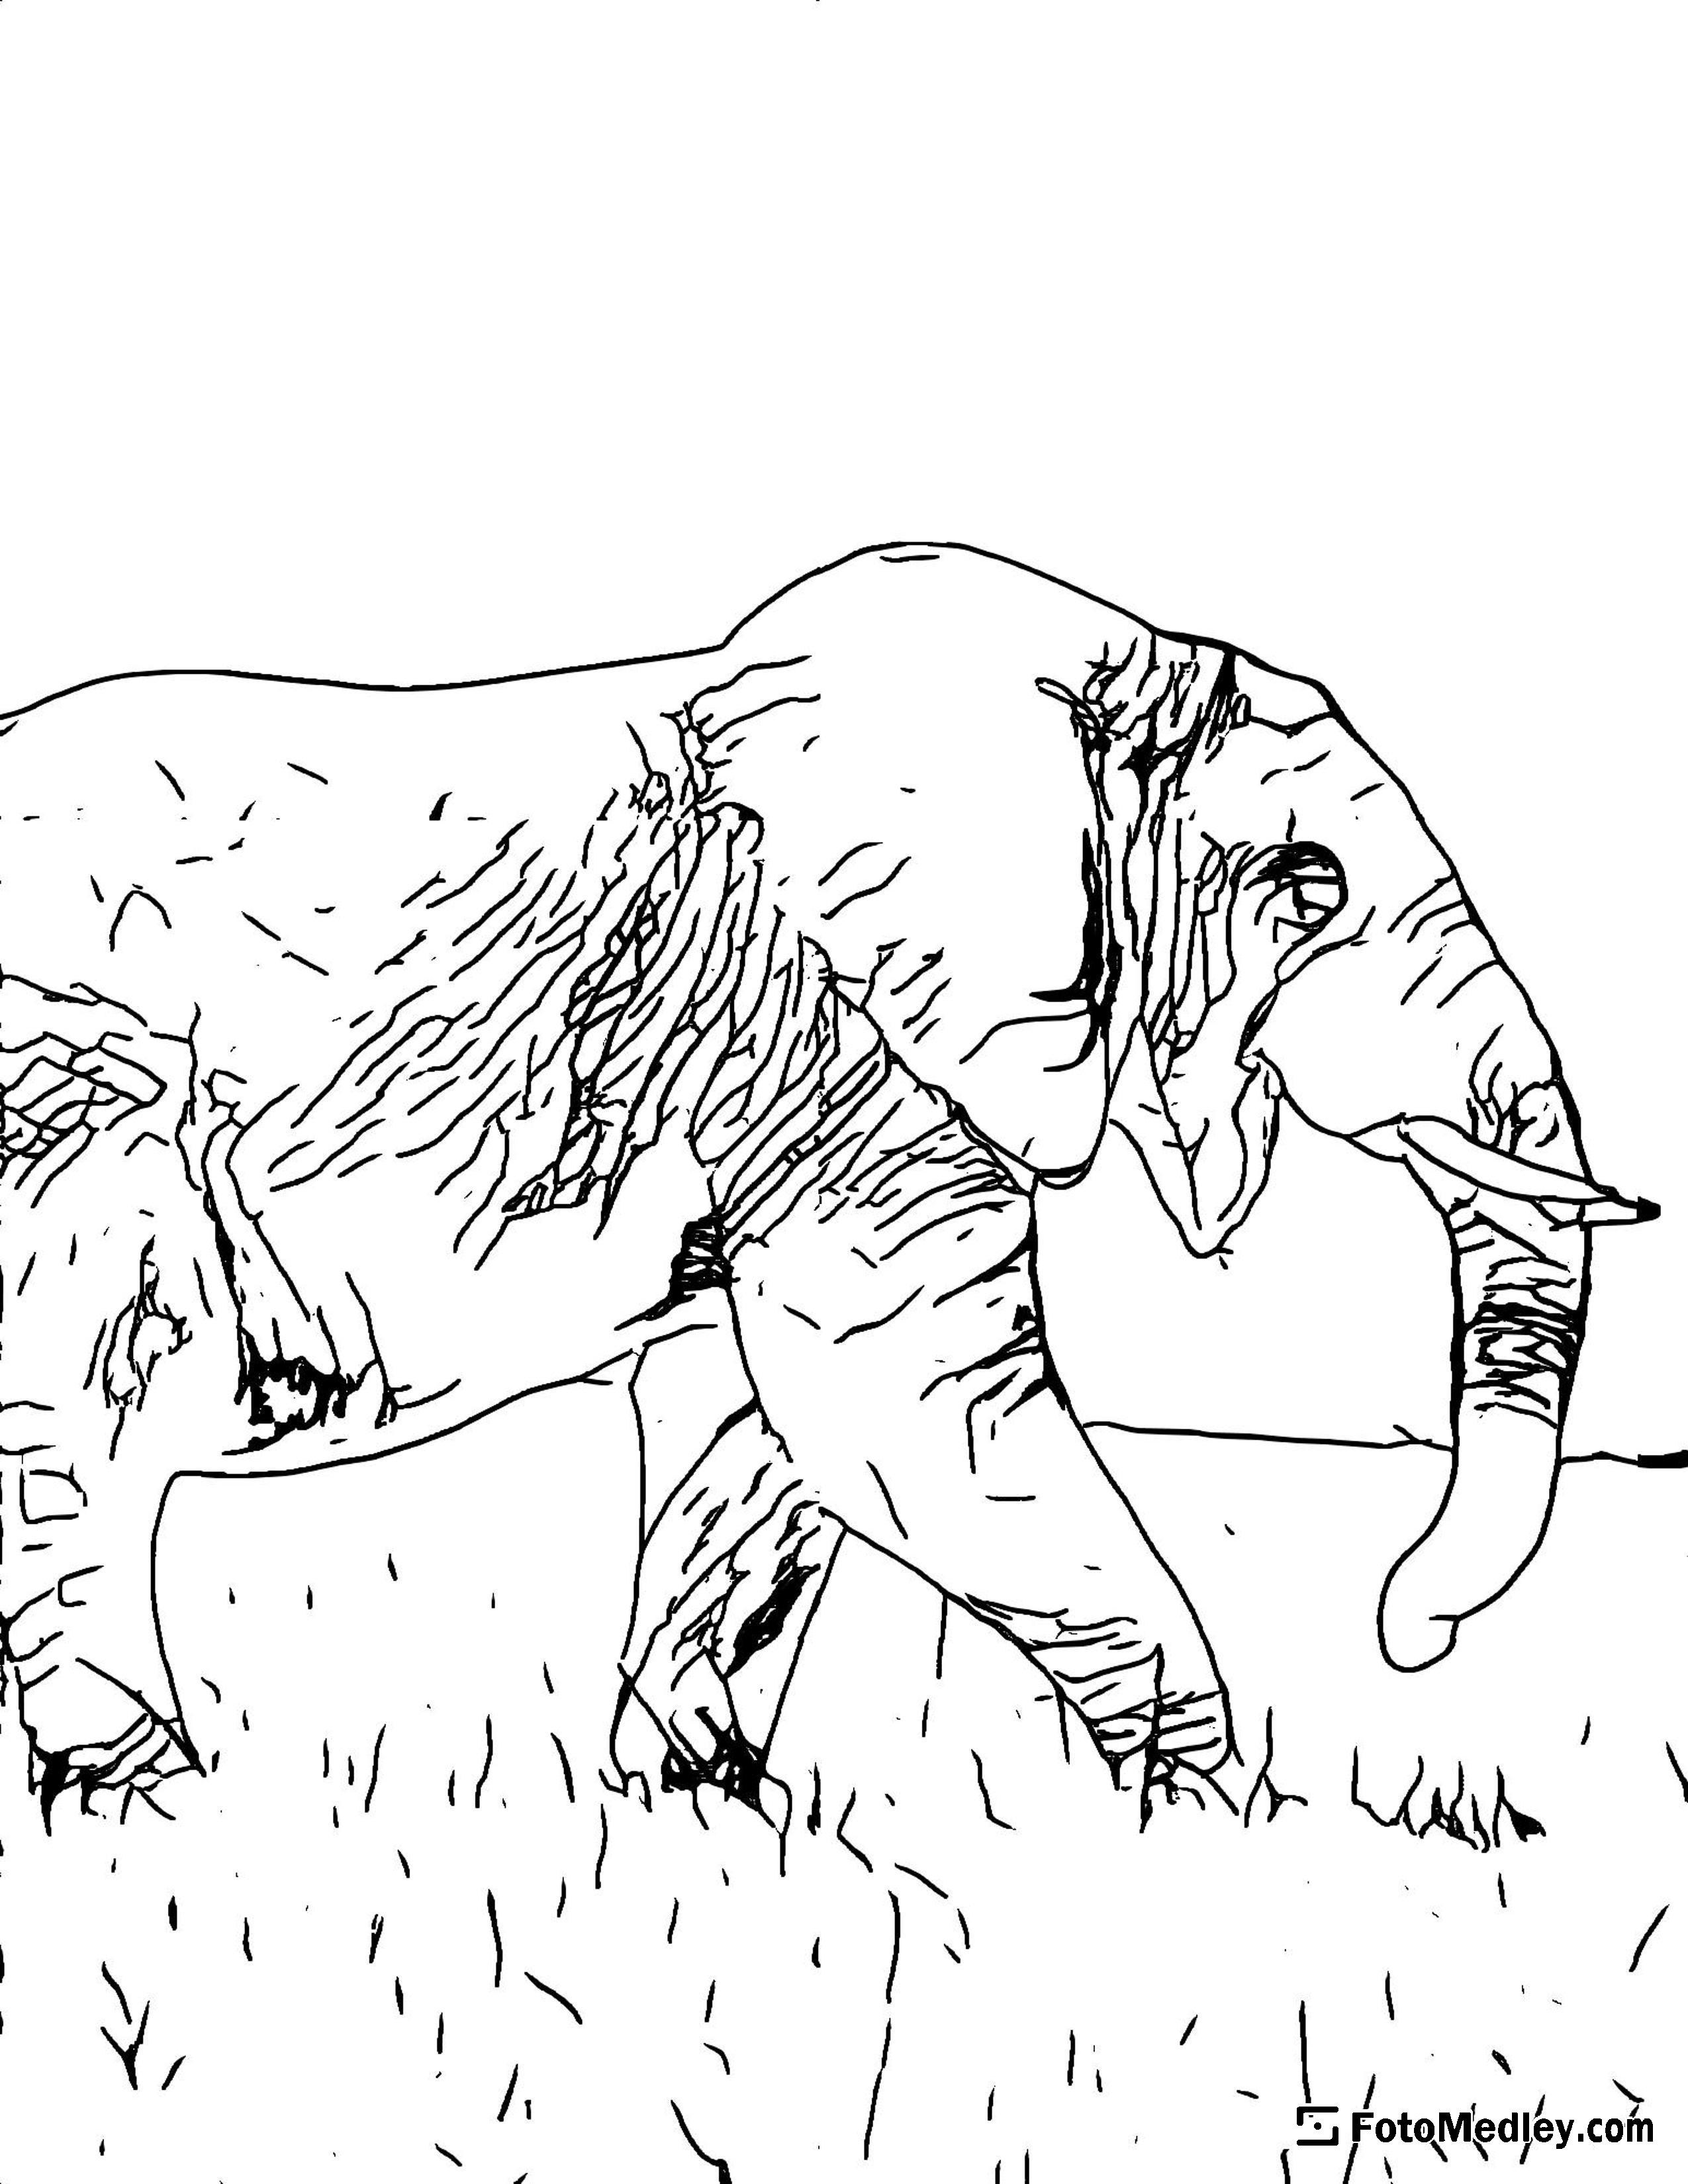 A coloring page of a of an elephant walking through the savanna.